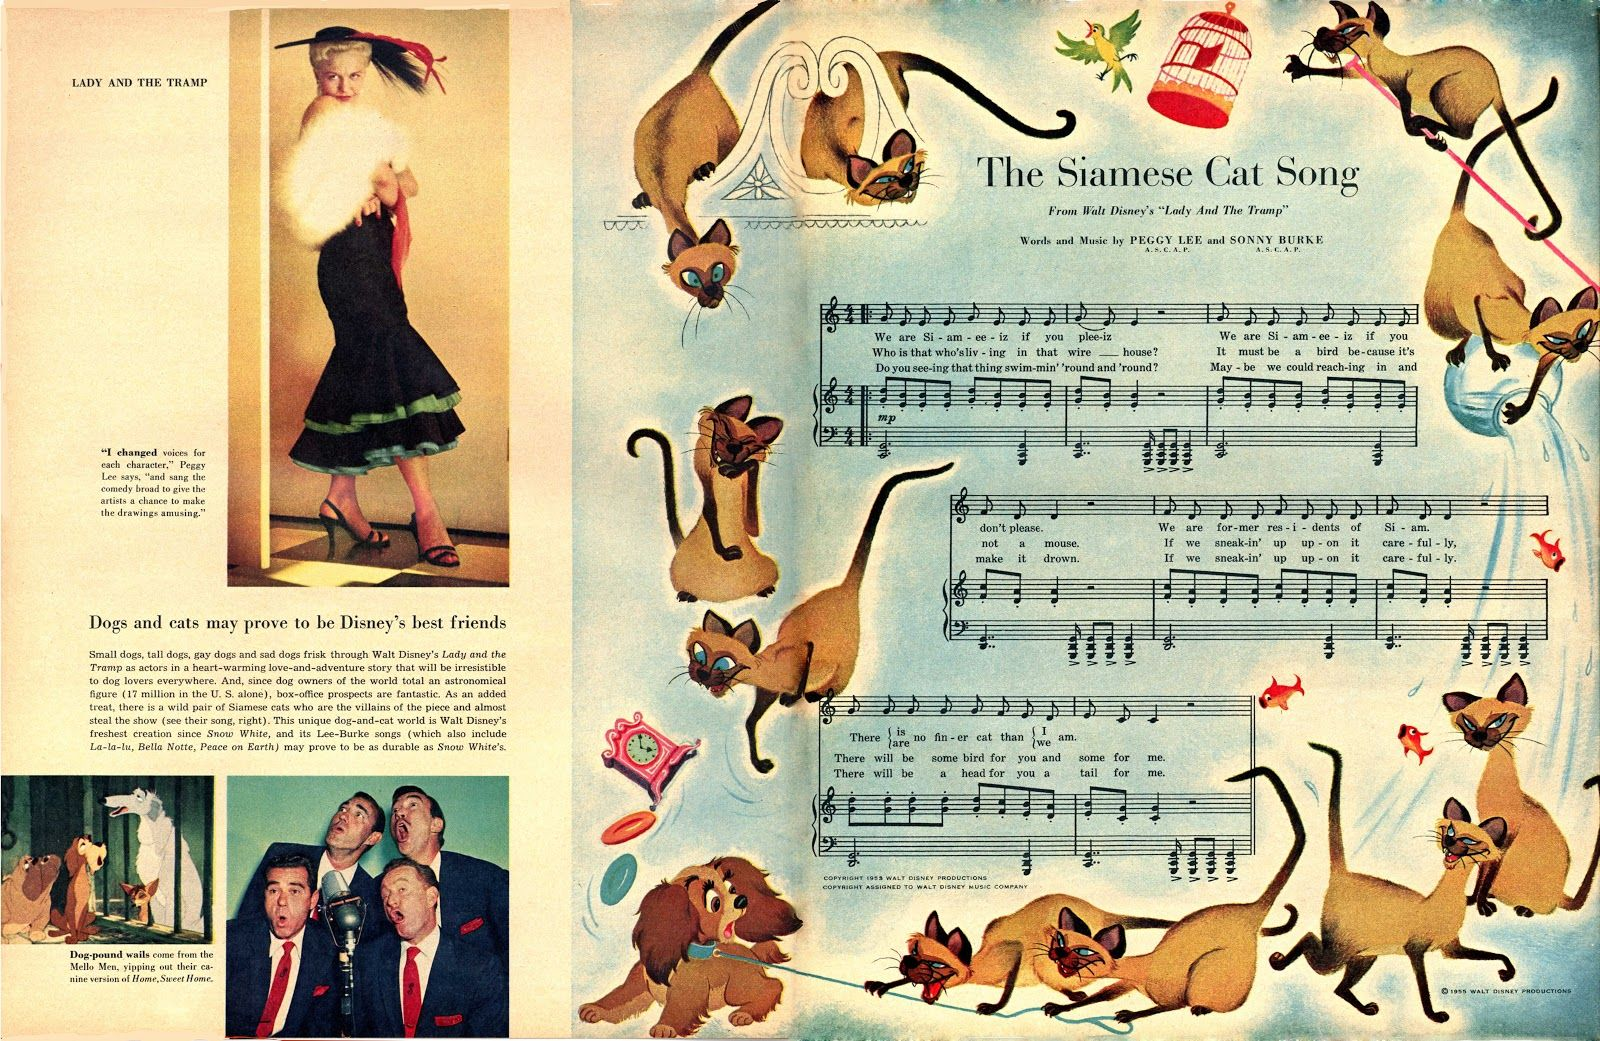 Lady and the Tramp Lady and the tramp, Song dog, Beat